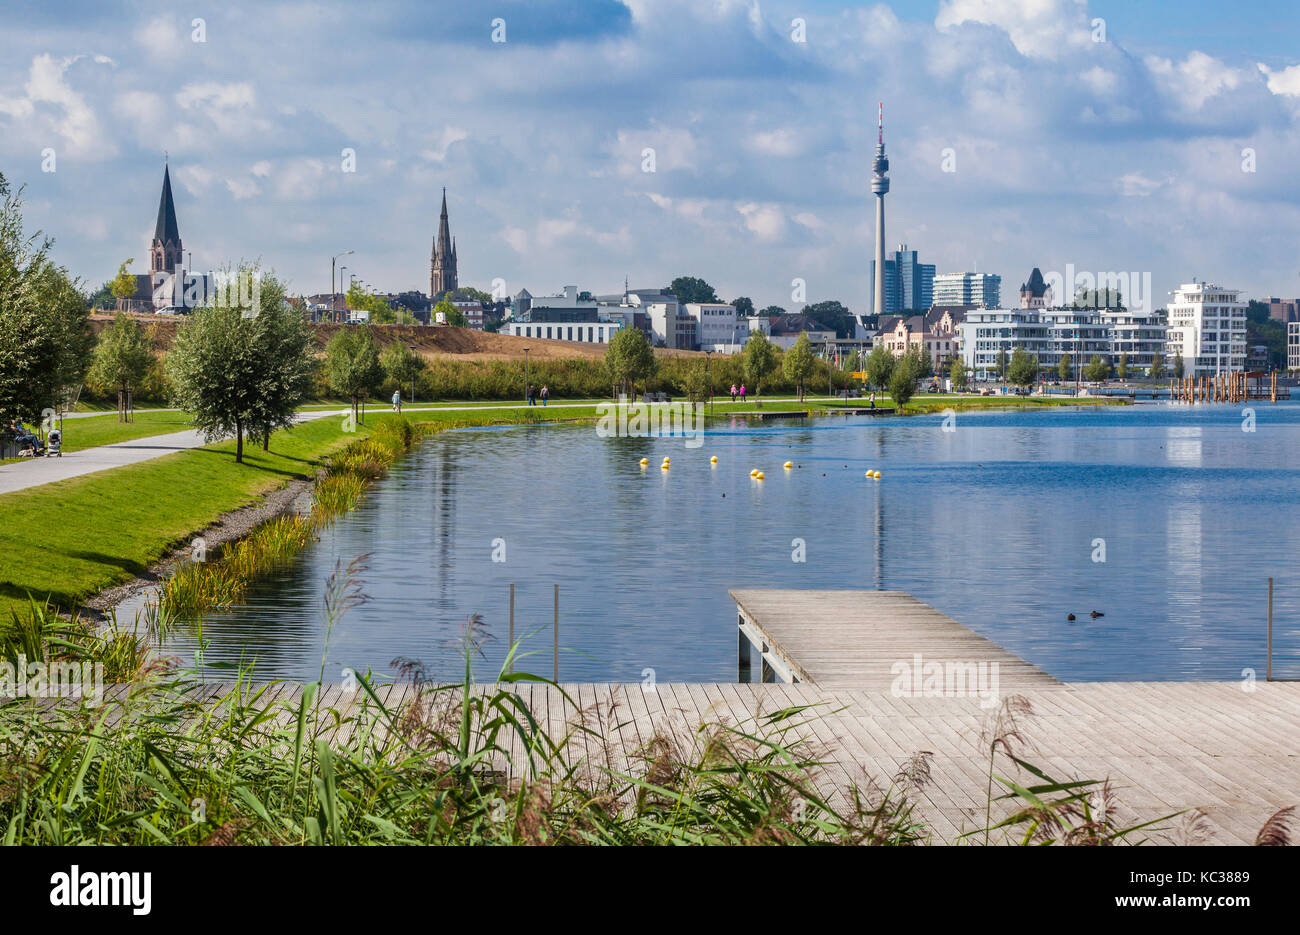 Germany, North Rhine-Westphalia, Dortmund-Hörde, view of the  Phoenix Lake recreational district, which was - Stock Image